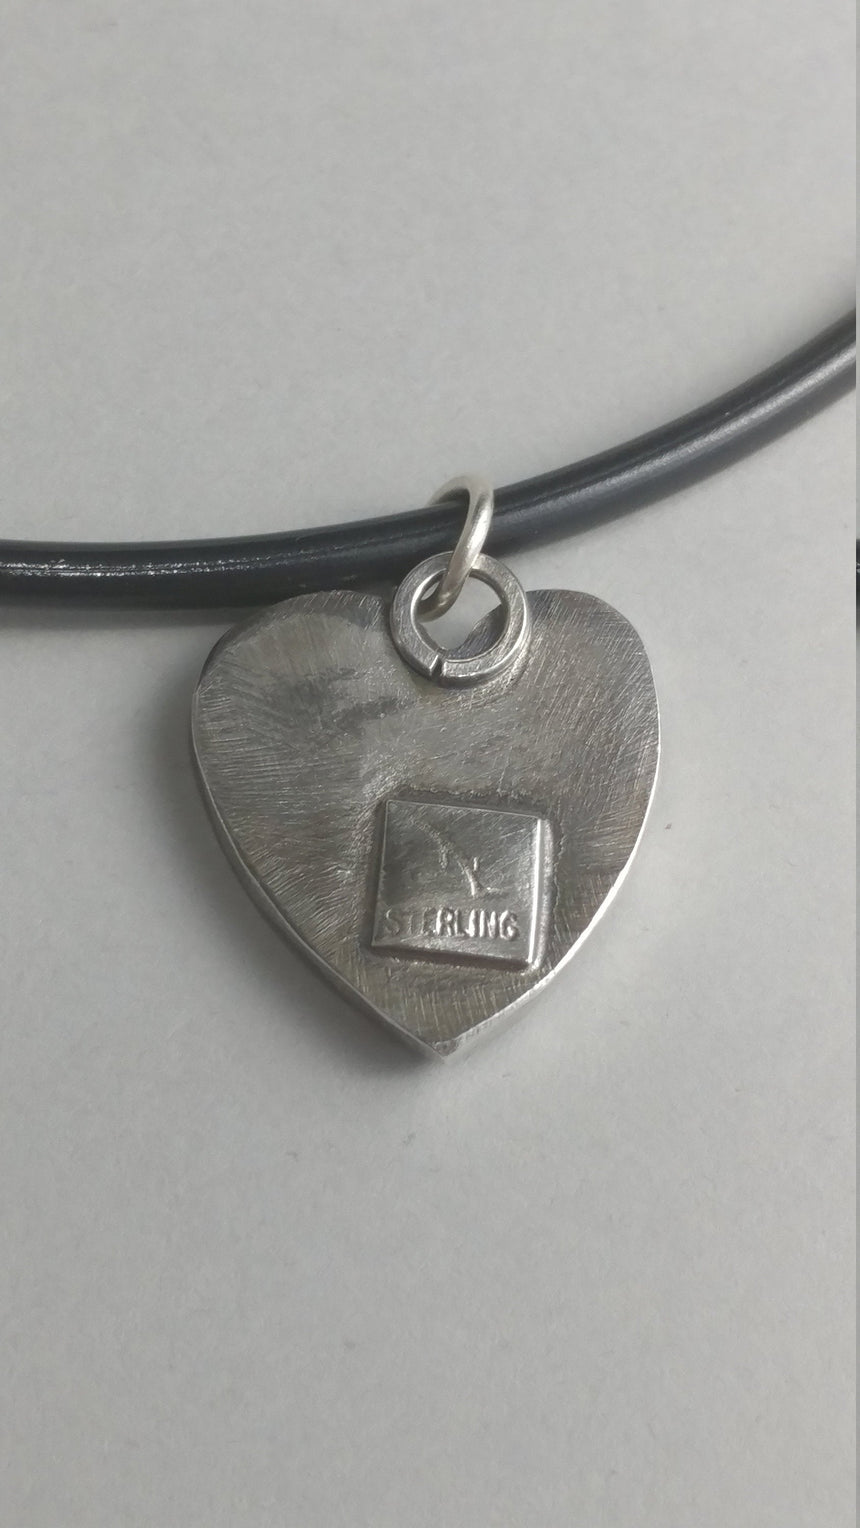 Reclaimed Silver Heart on Heart Pendant on a Leather Cord with silver clasp